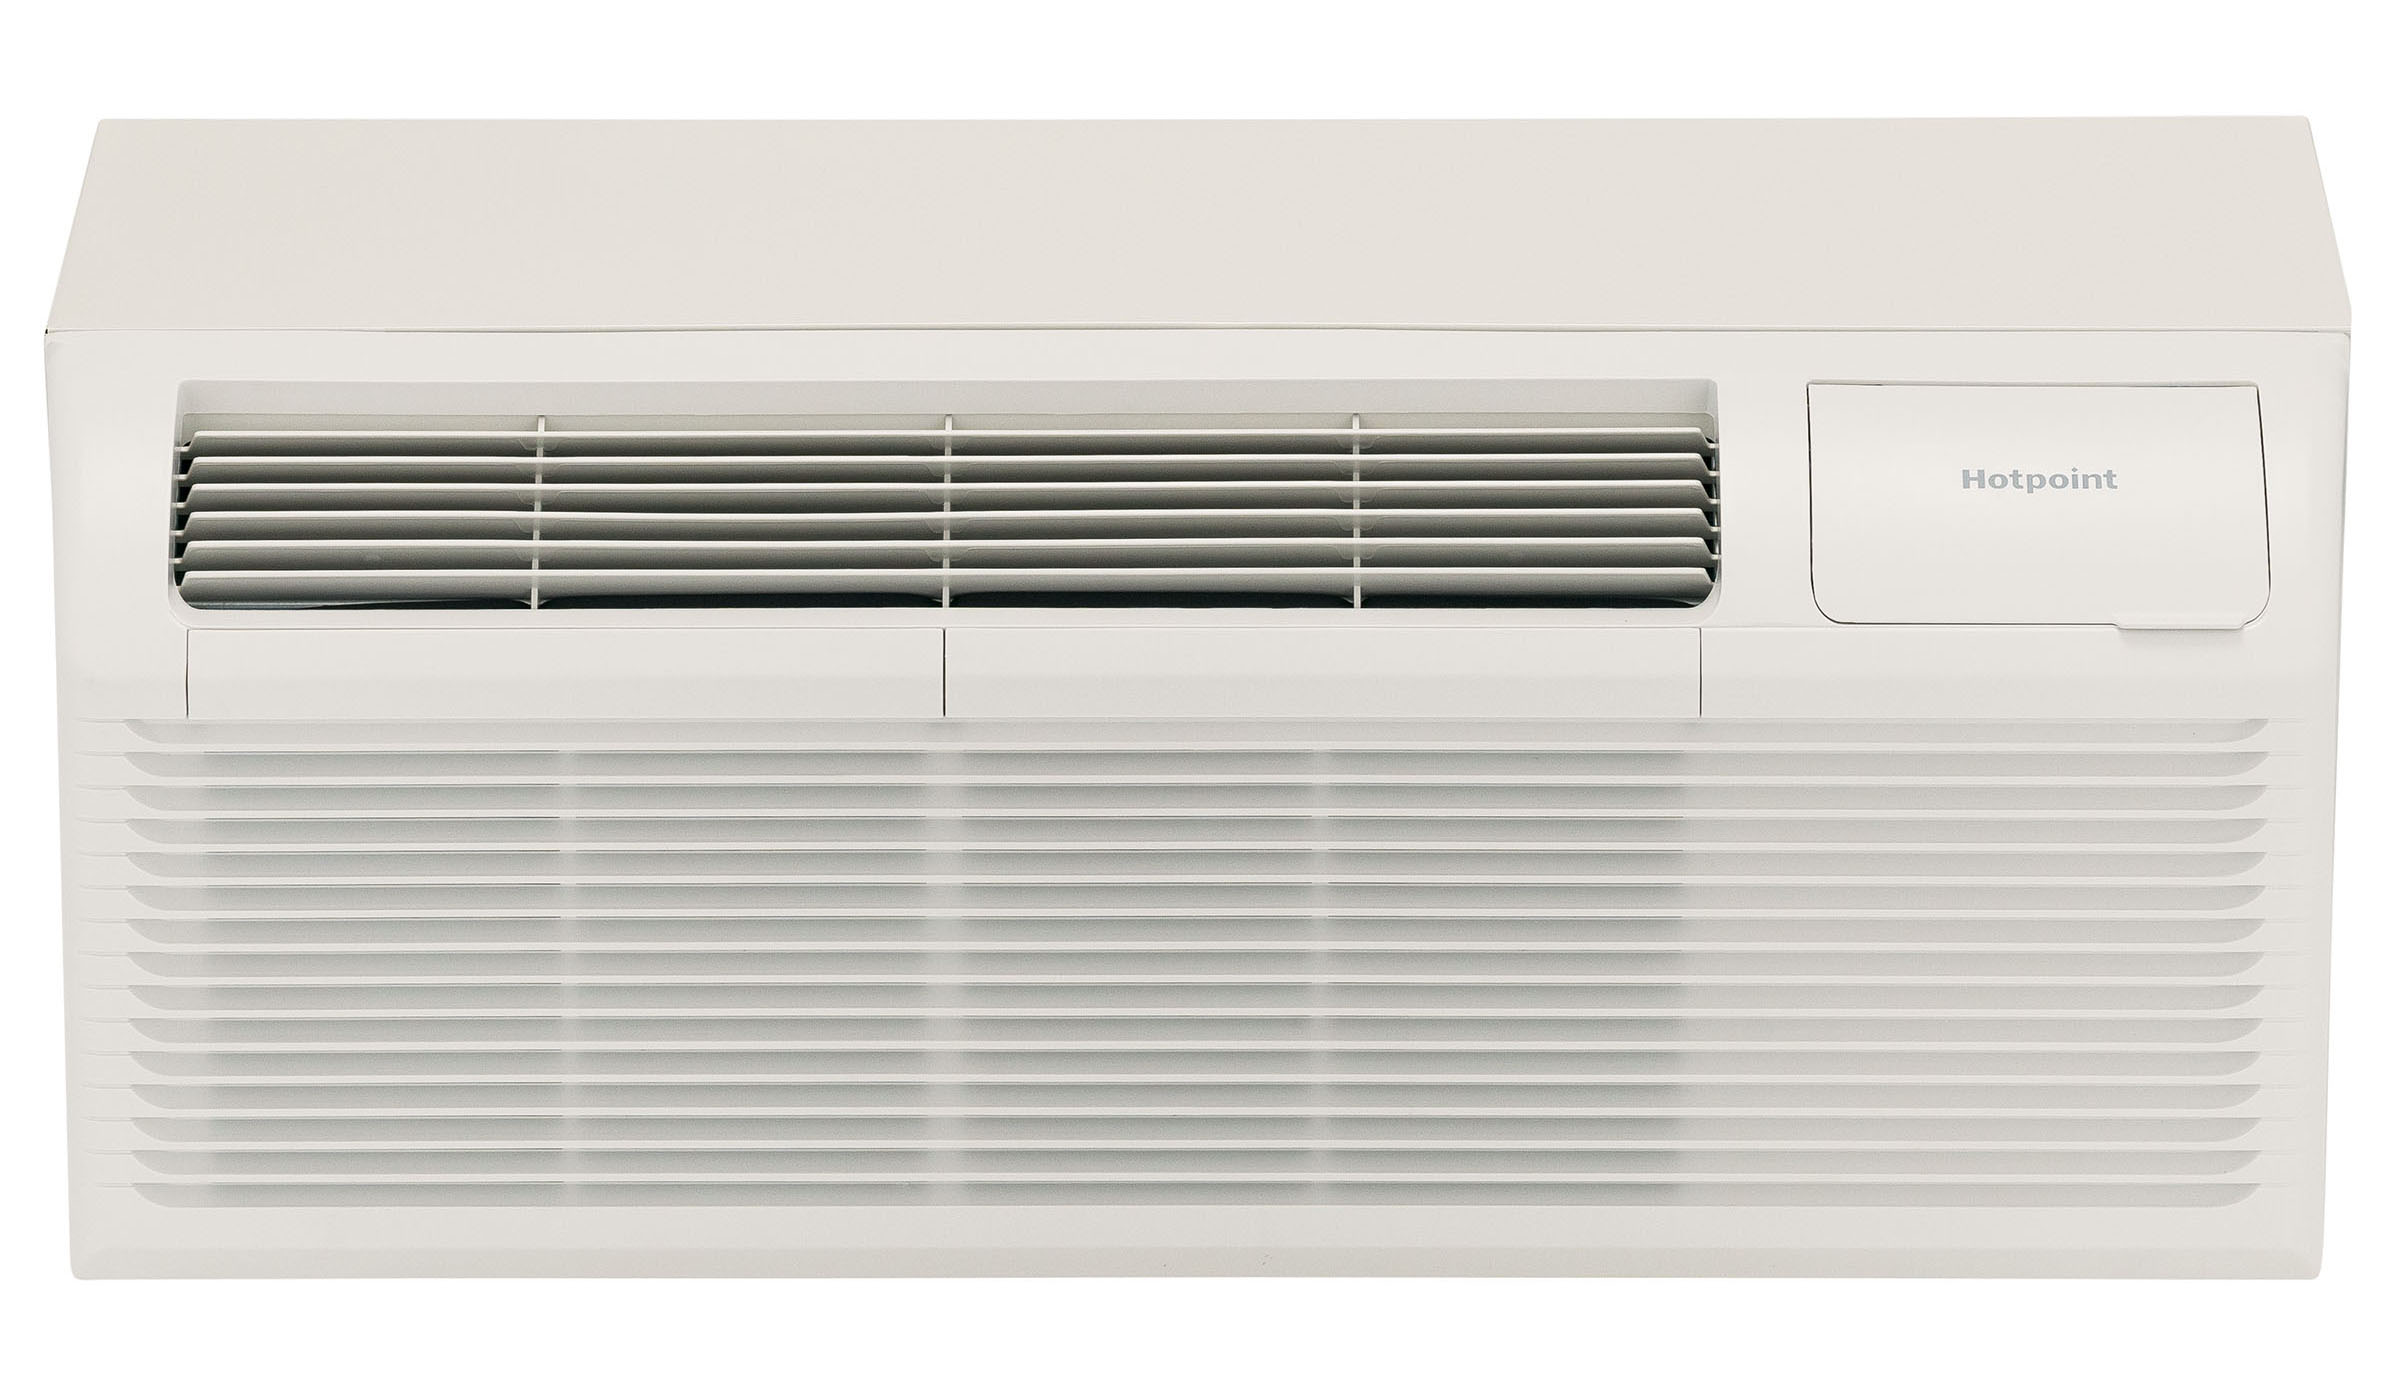 Hotpoint AH11E15D3B 15000 BTU PTAC Air Conditioner with Electric Heat - 20 Amp - 208/230 Volt